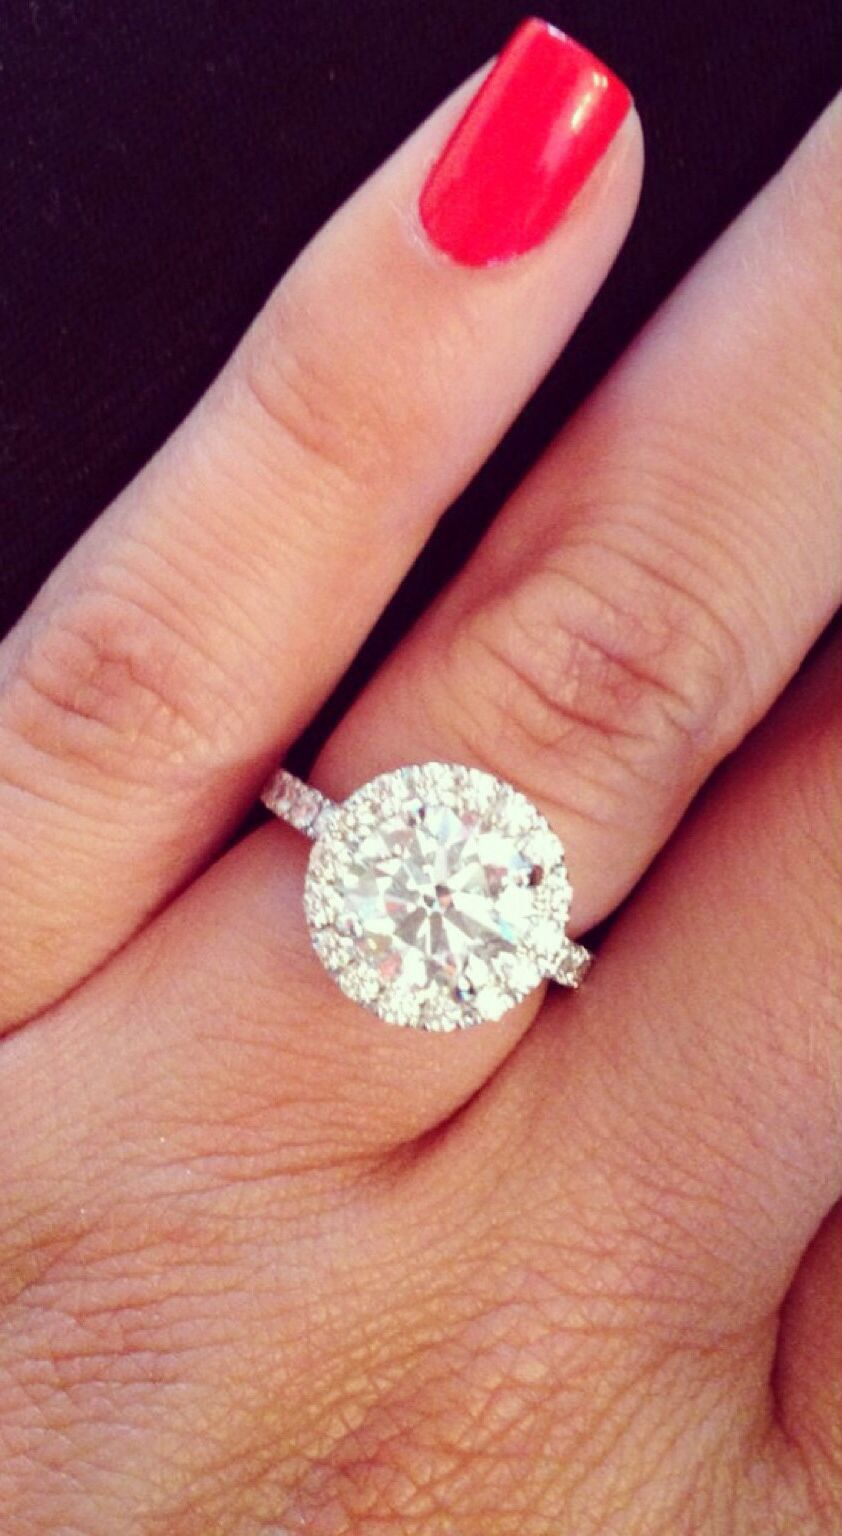 on fabfitfun bride indeed jennie minimalist for imagine the is diamond answer and yes engagement presenting this ring dreamy a knee just down pearl kwon someone subtle getting one magazine rings